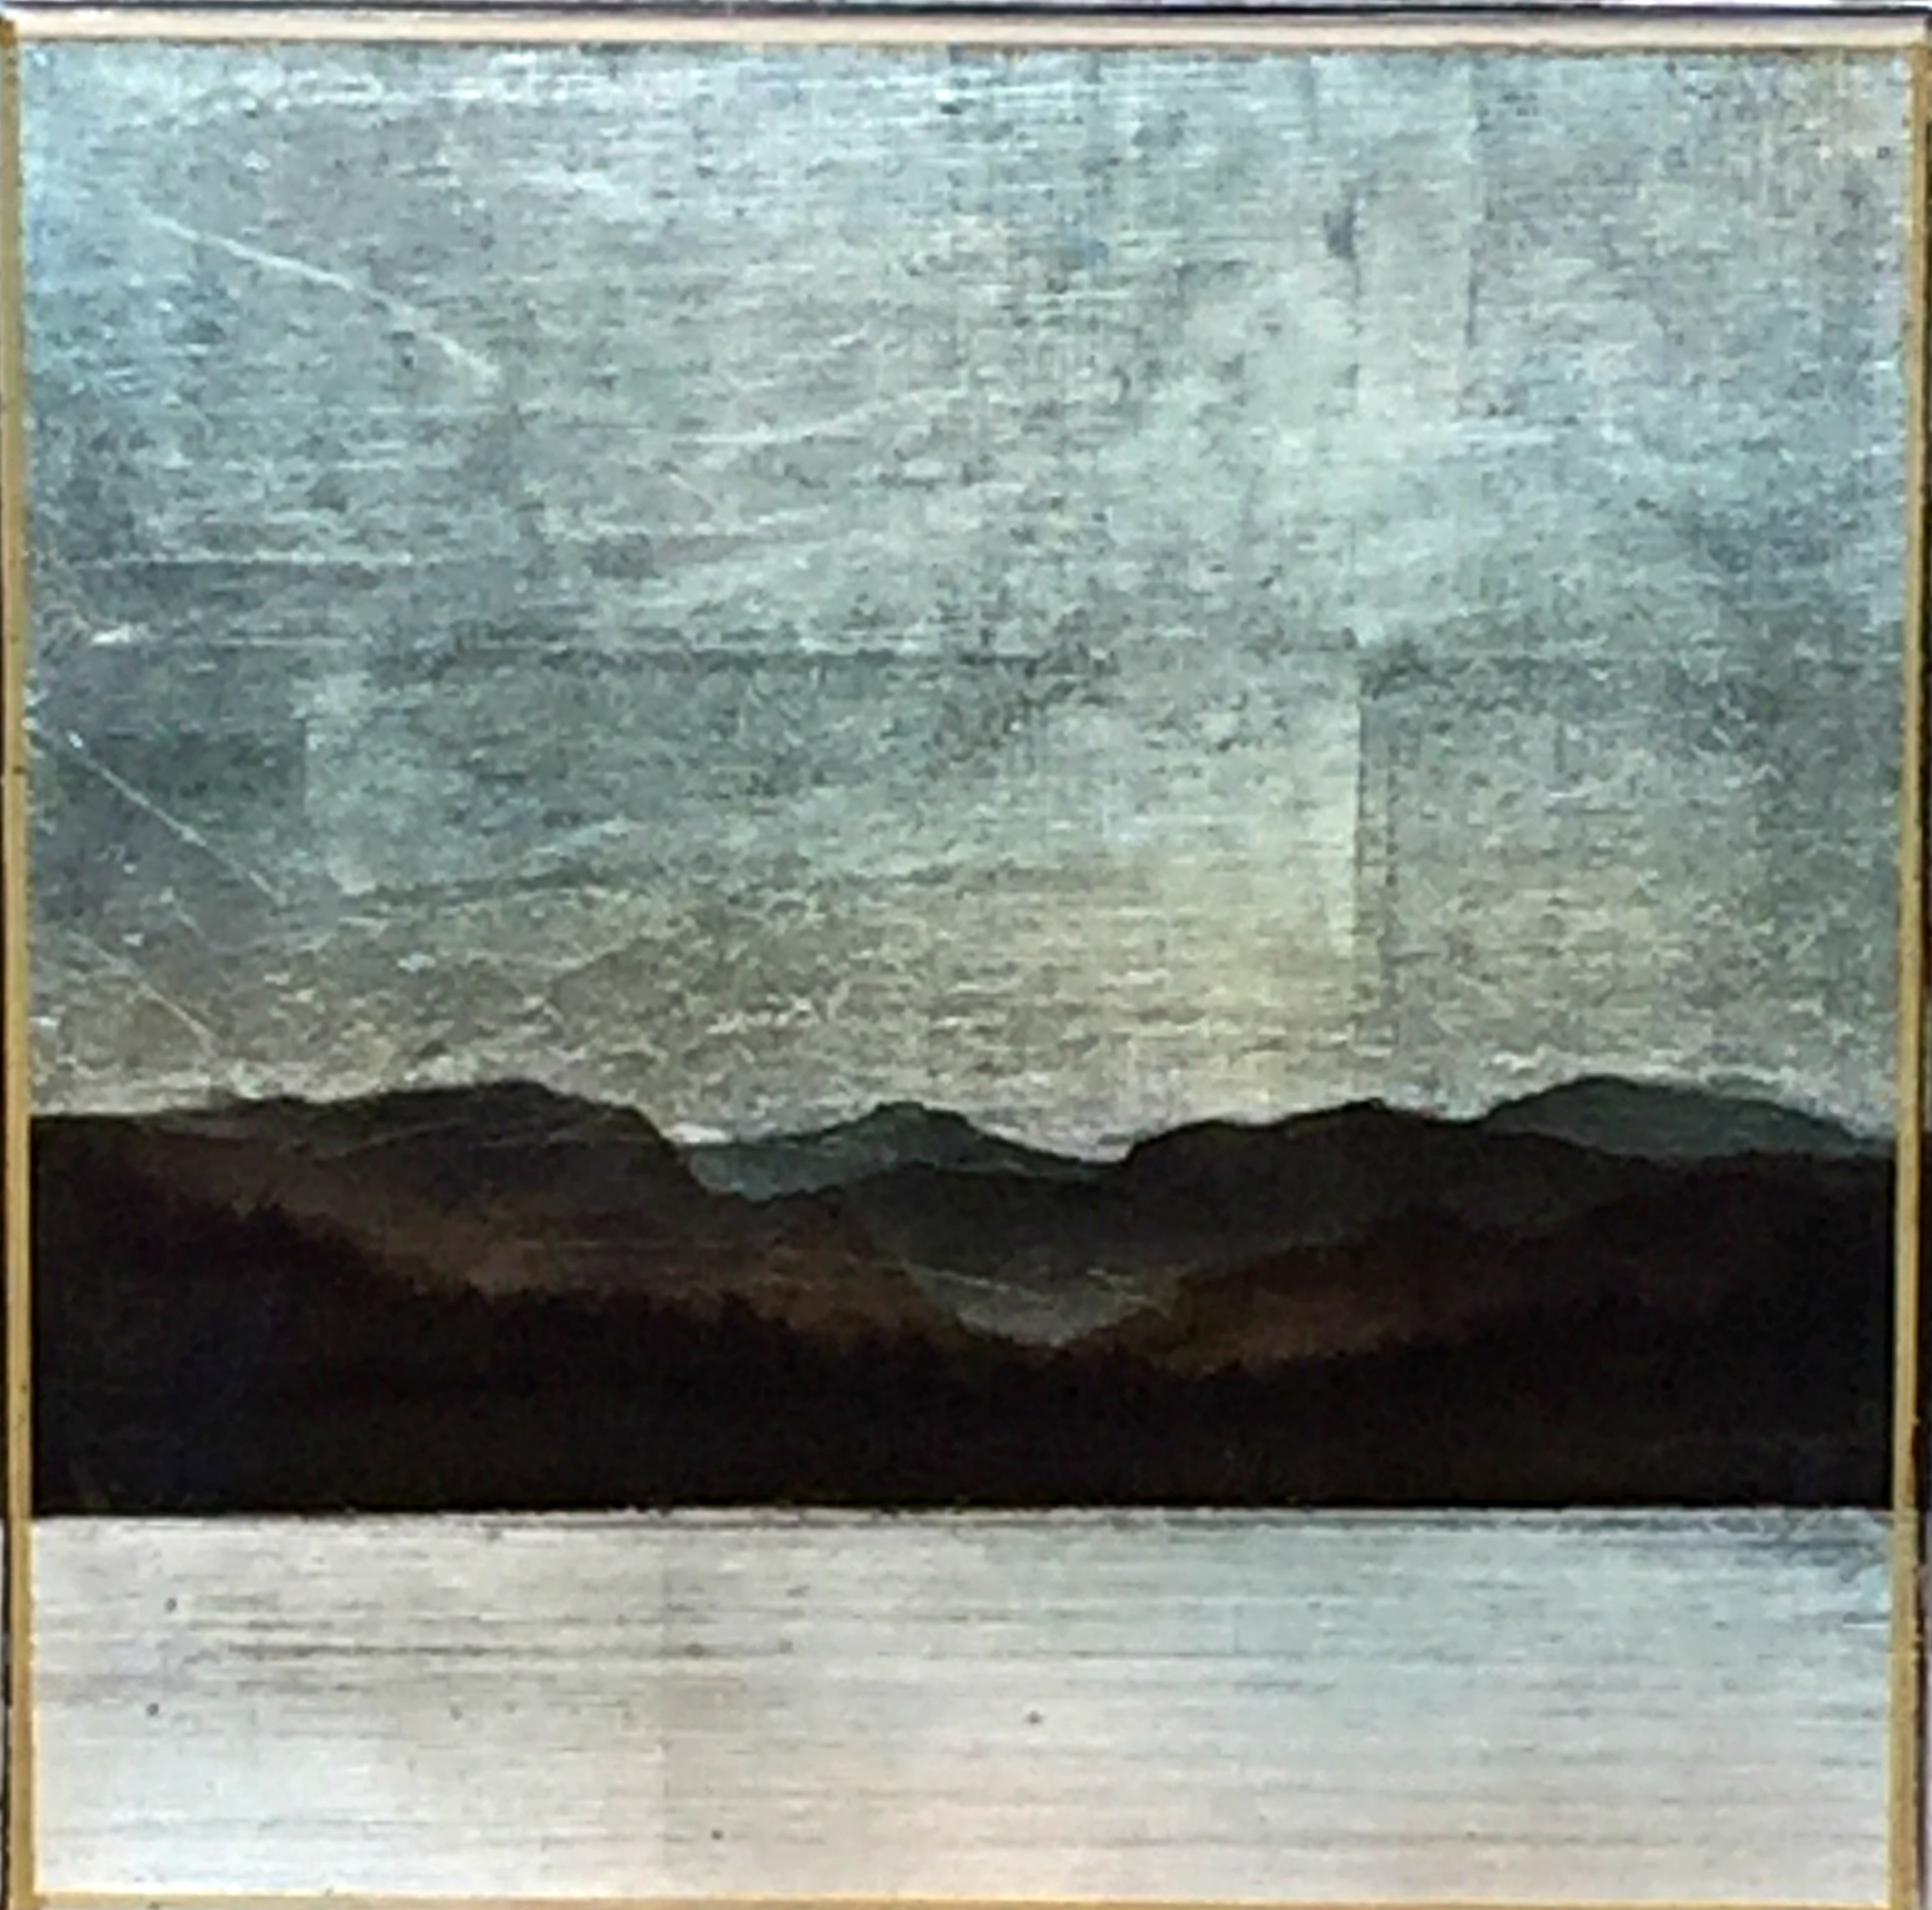 #172, mixed media landscape painting by David Graff | Effusion Art Gallery + Cast Glass Studio, Invermere BC